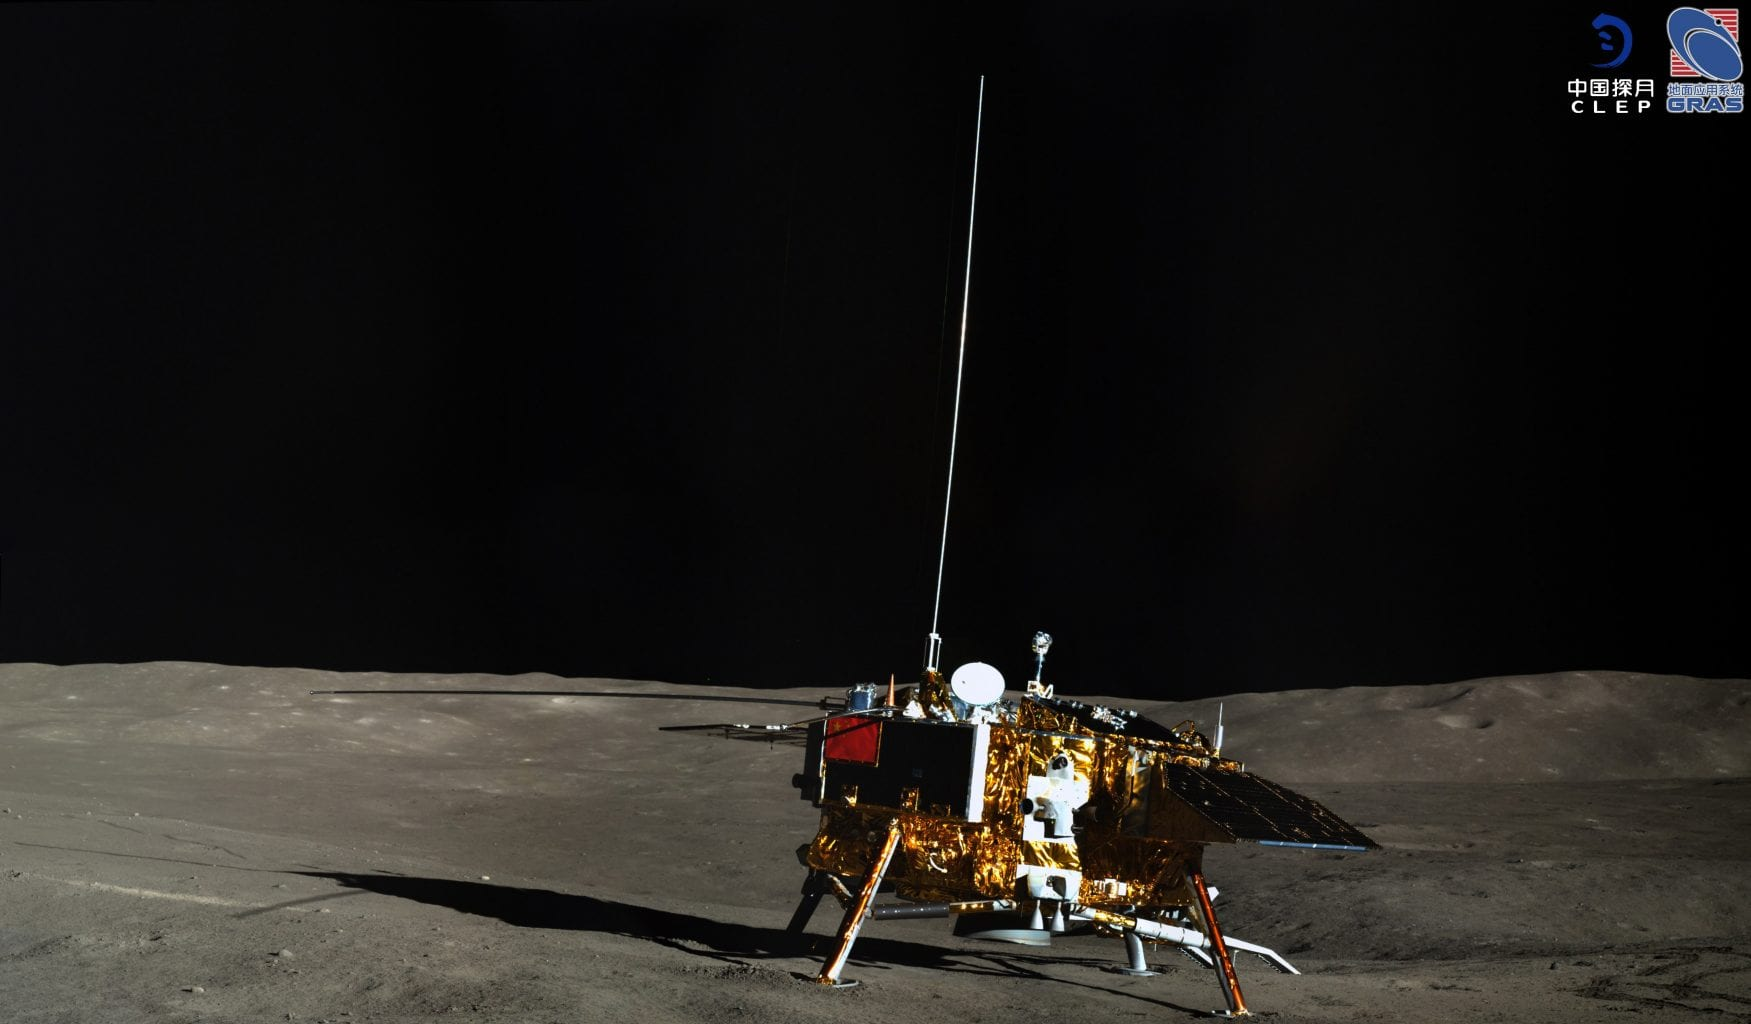 Image from Yutu-2 of the lander. Credit: CLEP/ Lunar and Planetary Multimedia Database